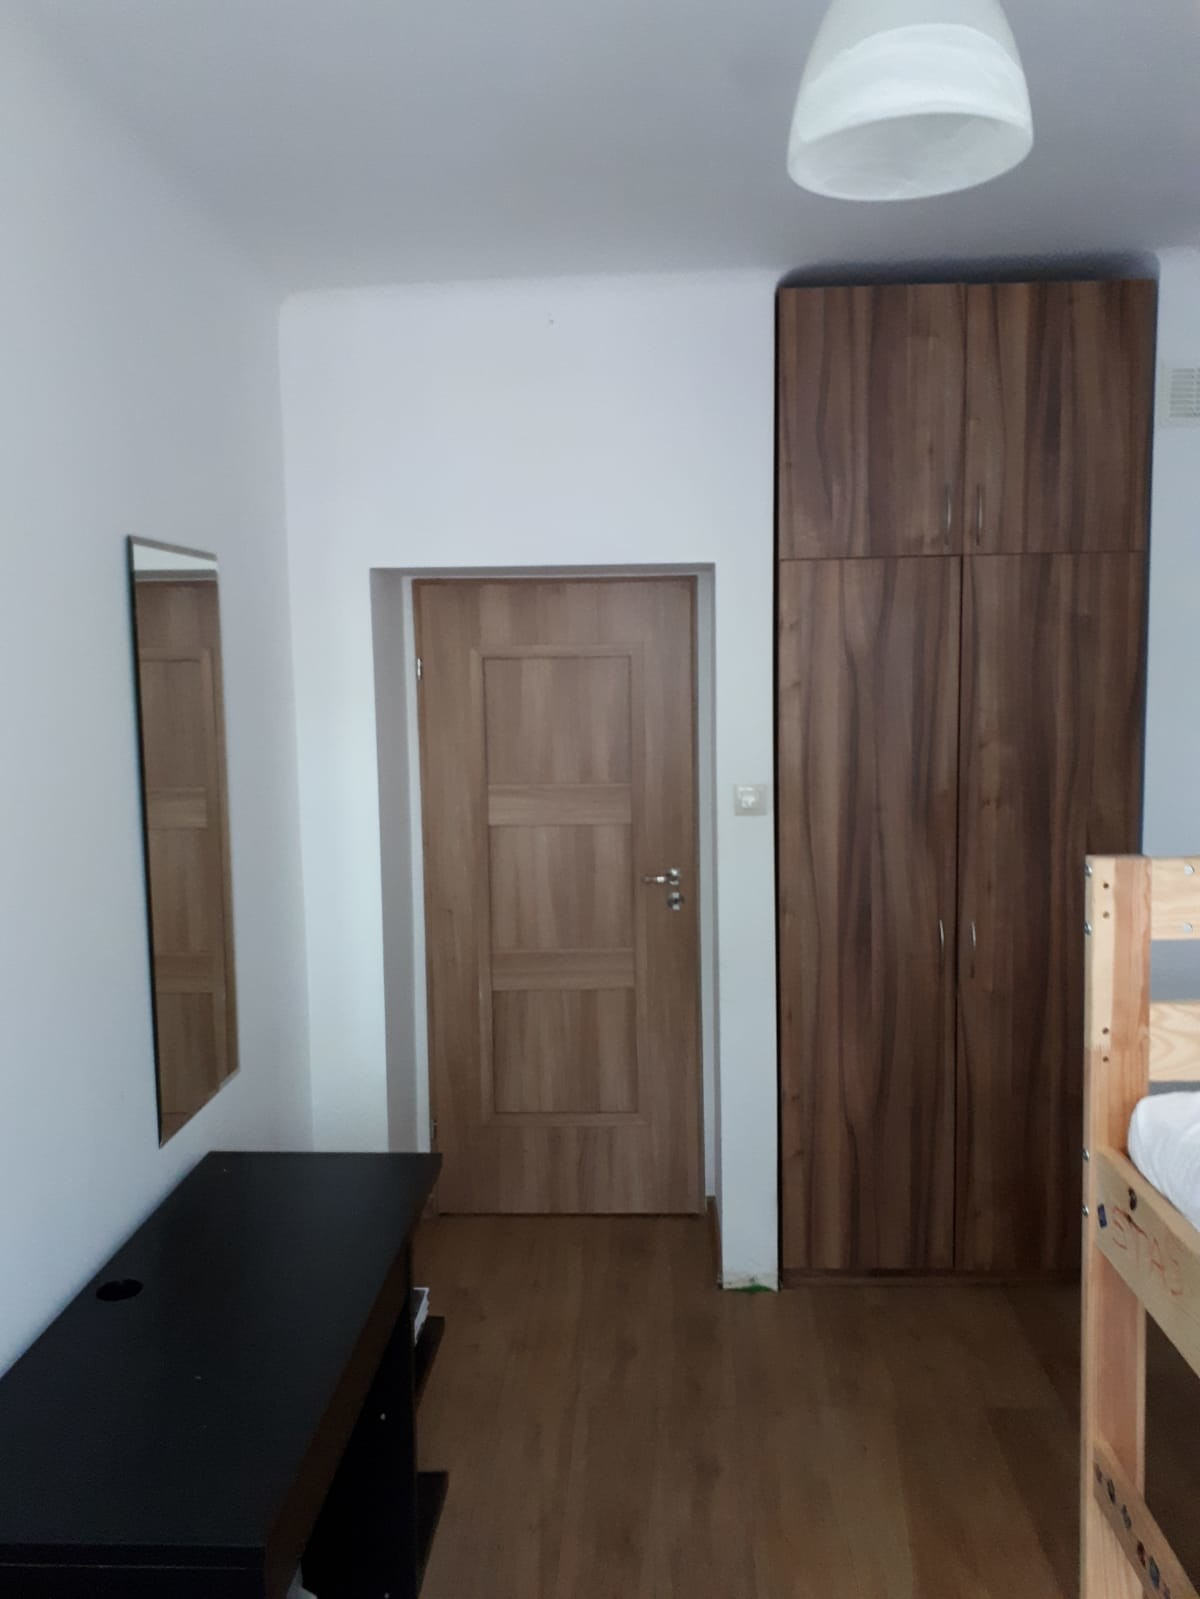 2-bedroom apartment right next to the Wierzbno metro station